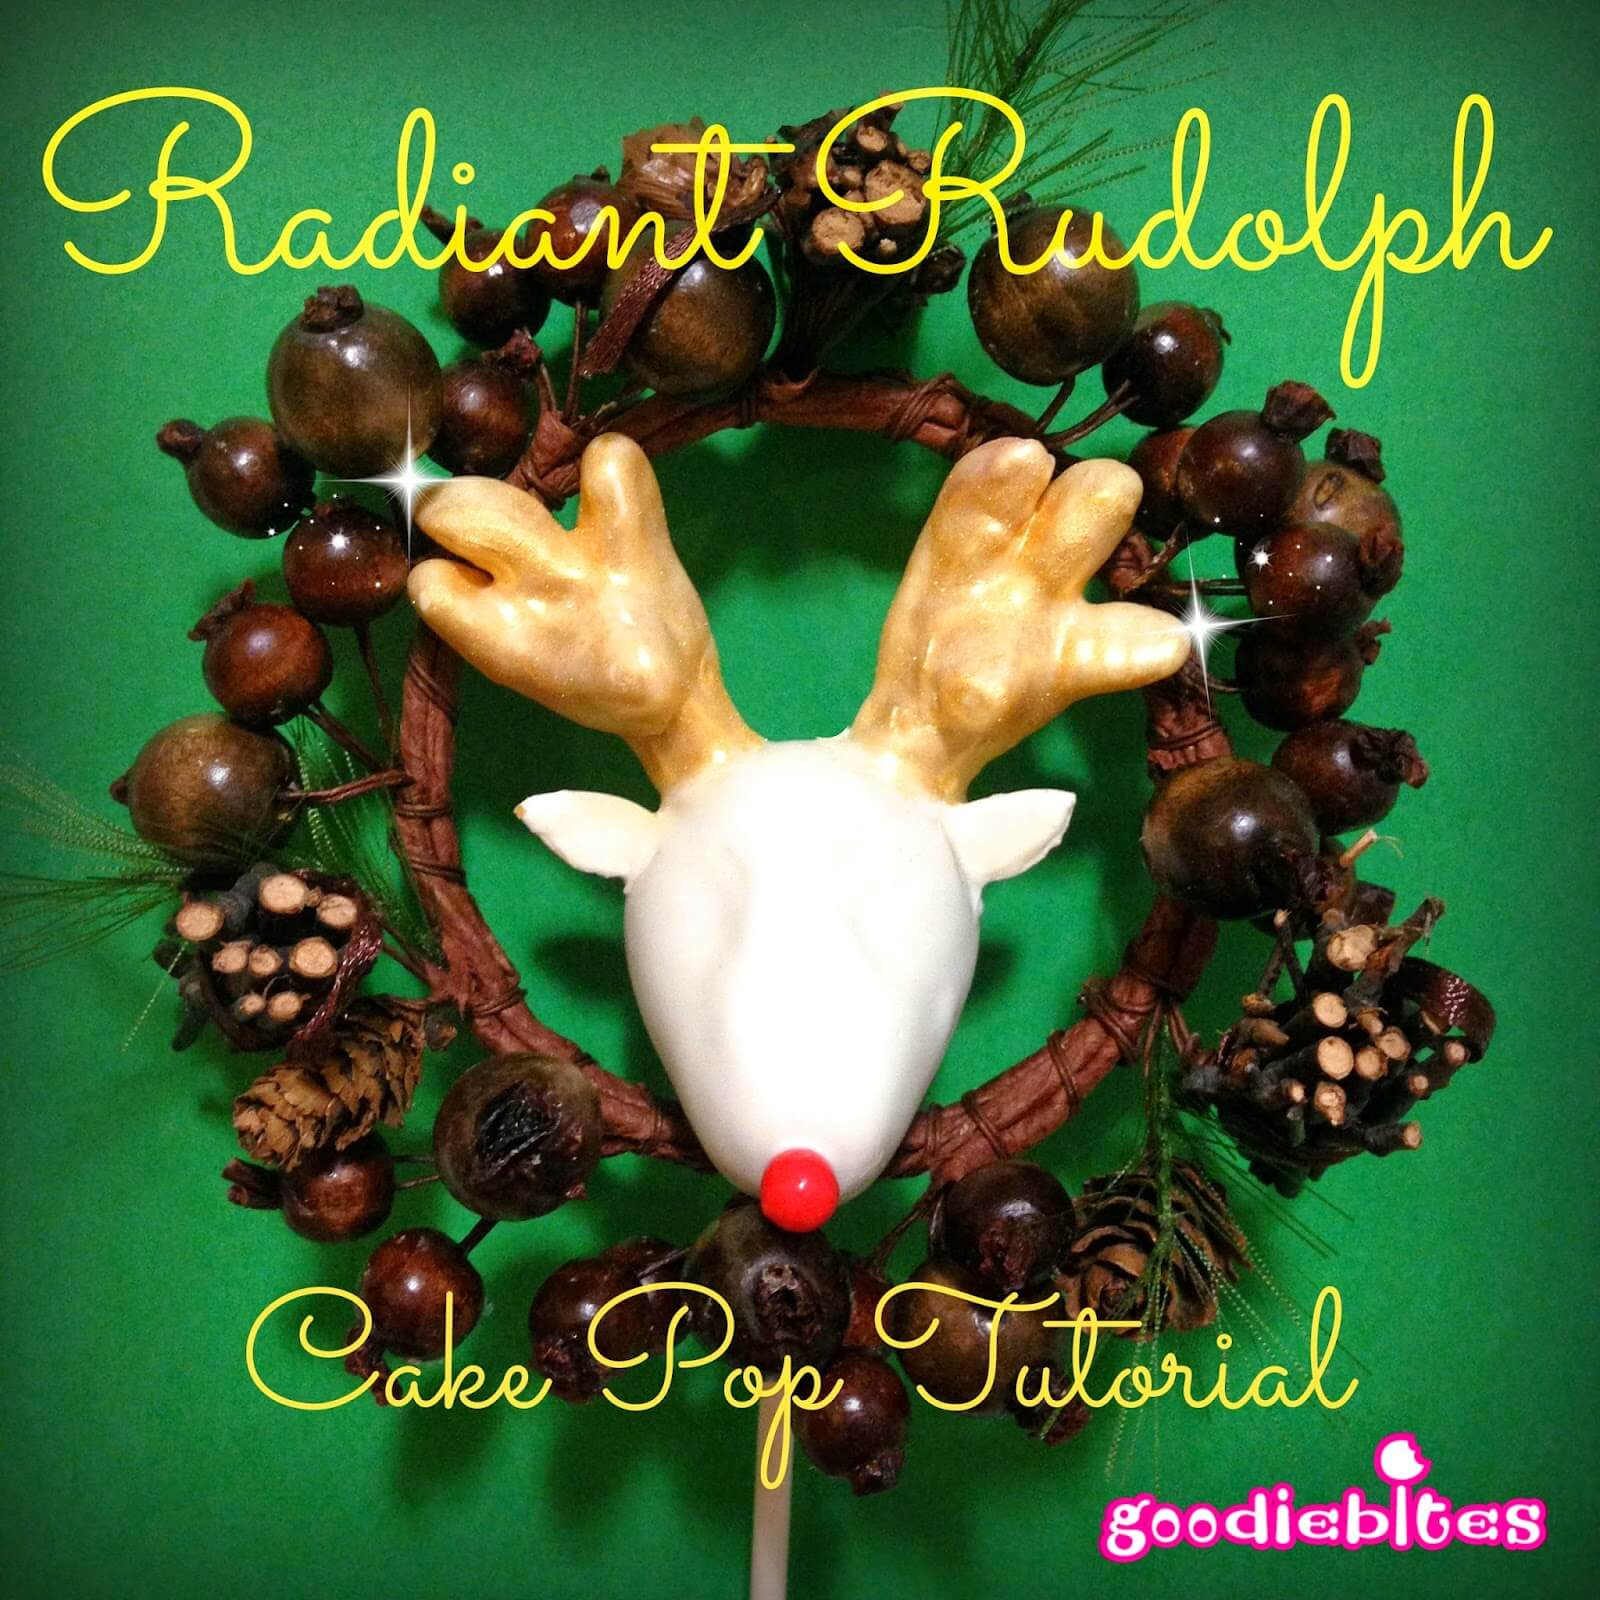 Rudolph Cake Pops from GoodieBites